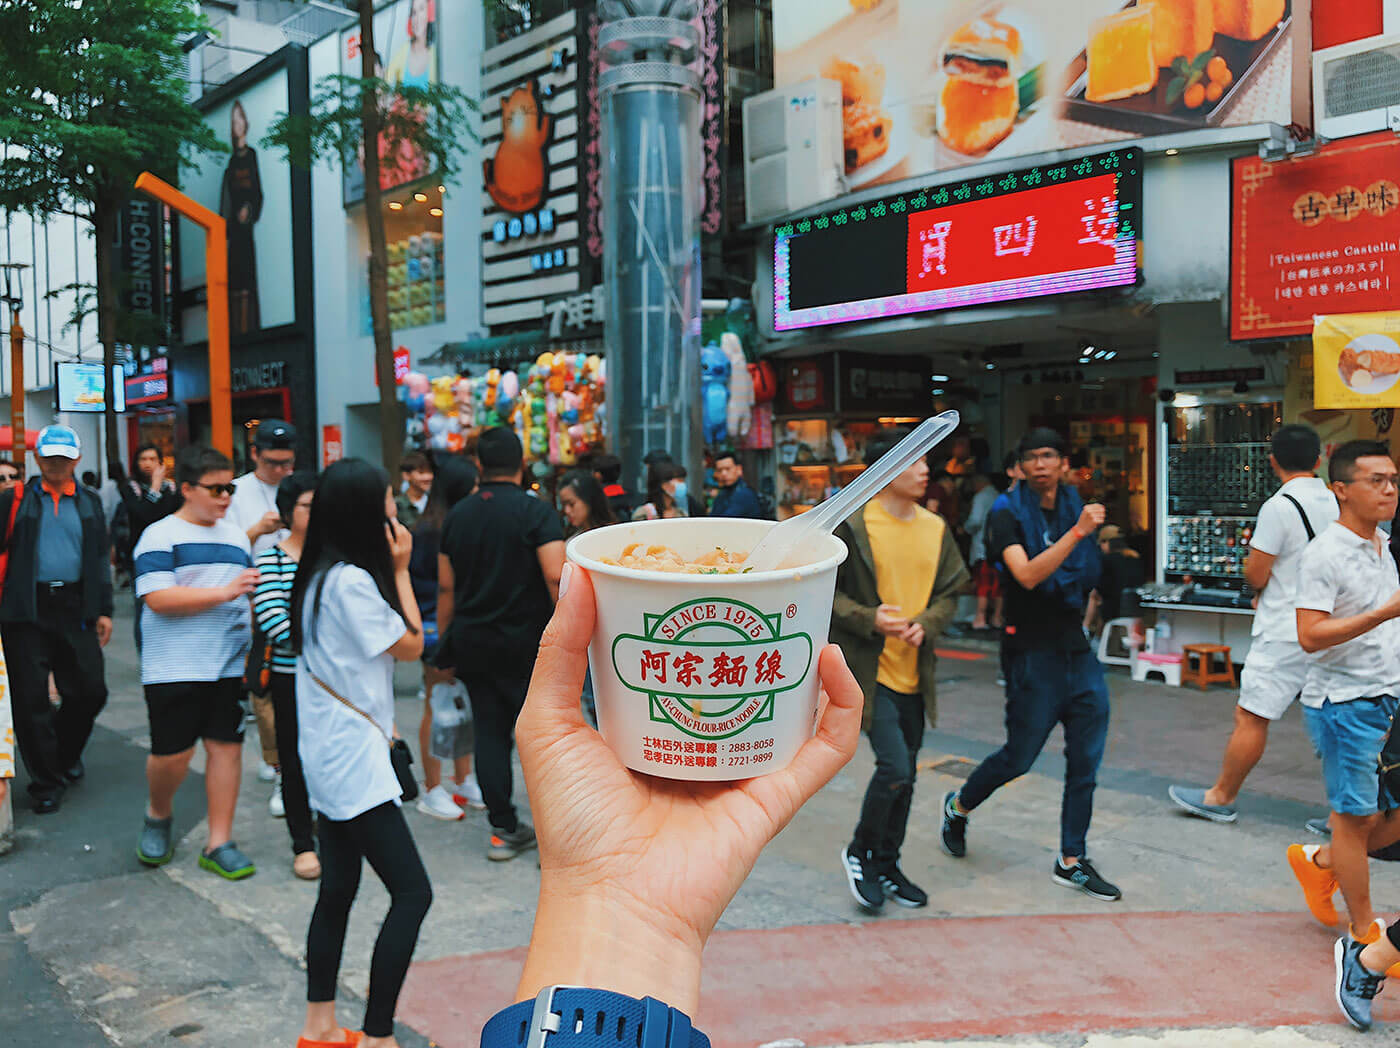 Taipei Food: 10 Must Eat Food and Where to Find Them - Girl Eat World